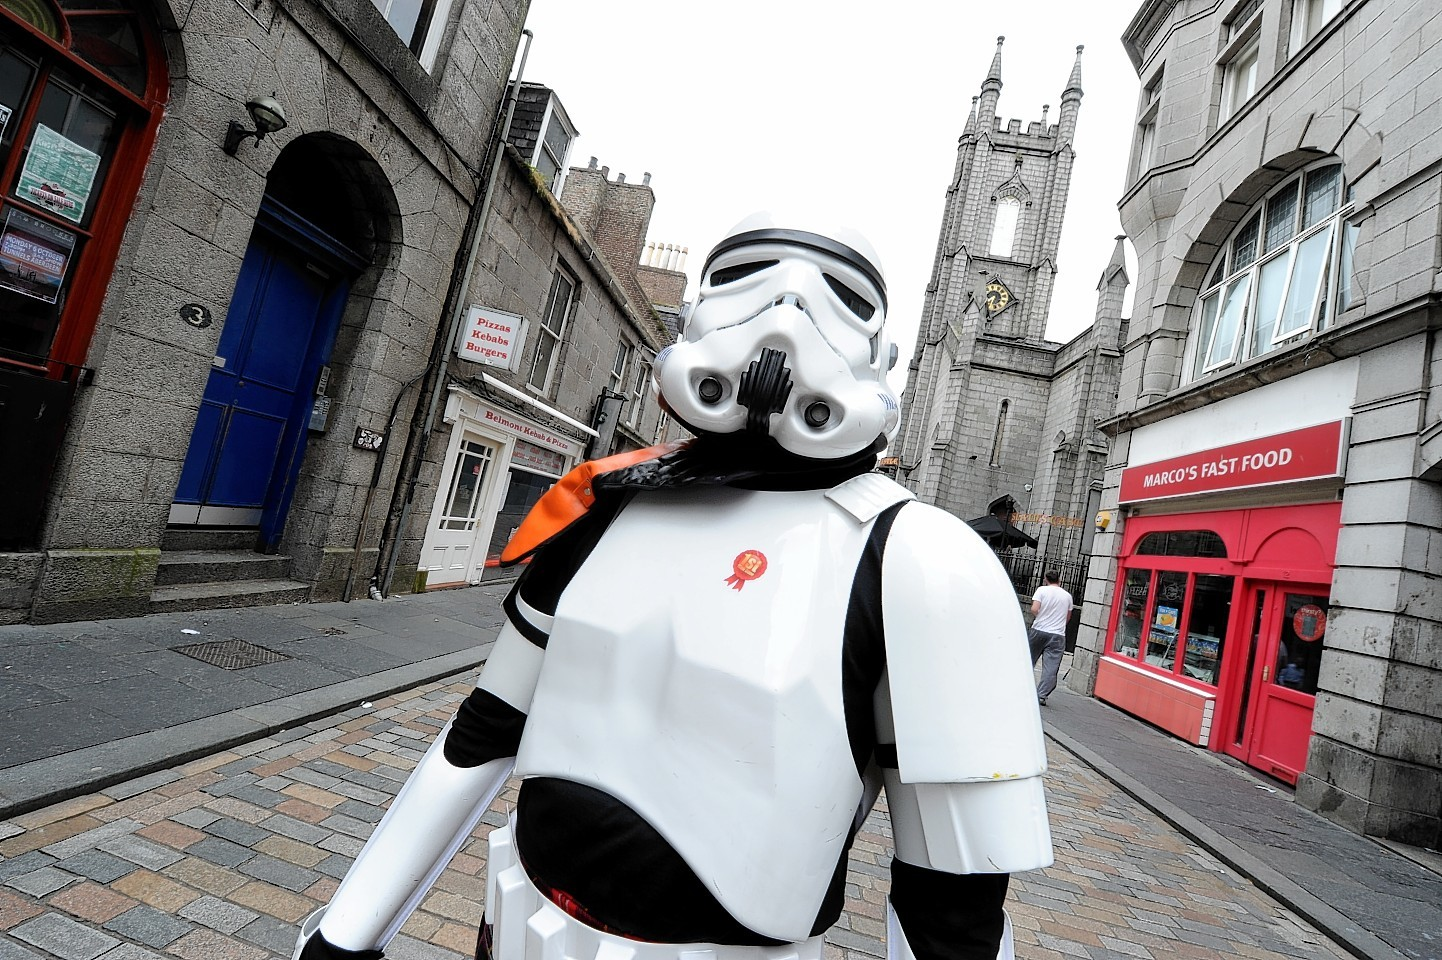 Stormtrooper on the streets of Aberdeen